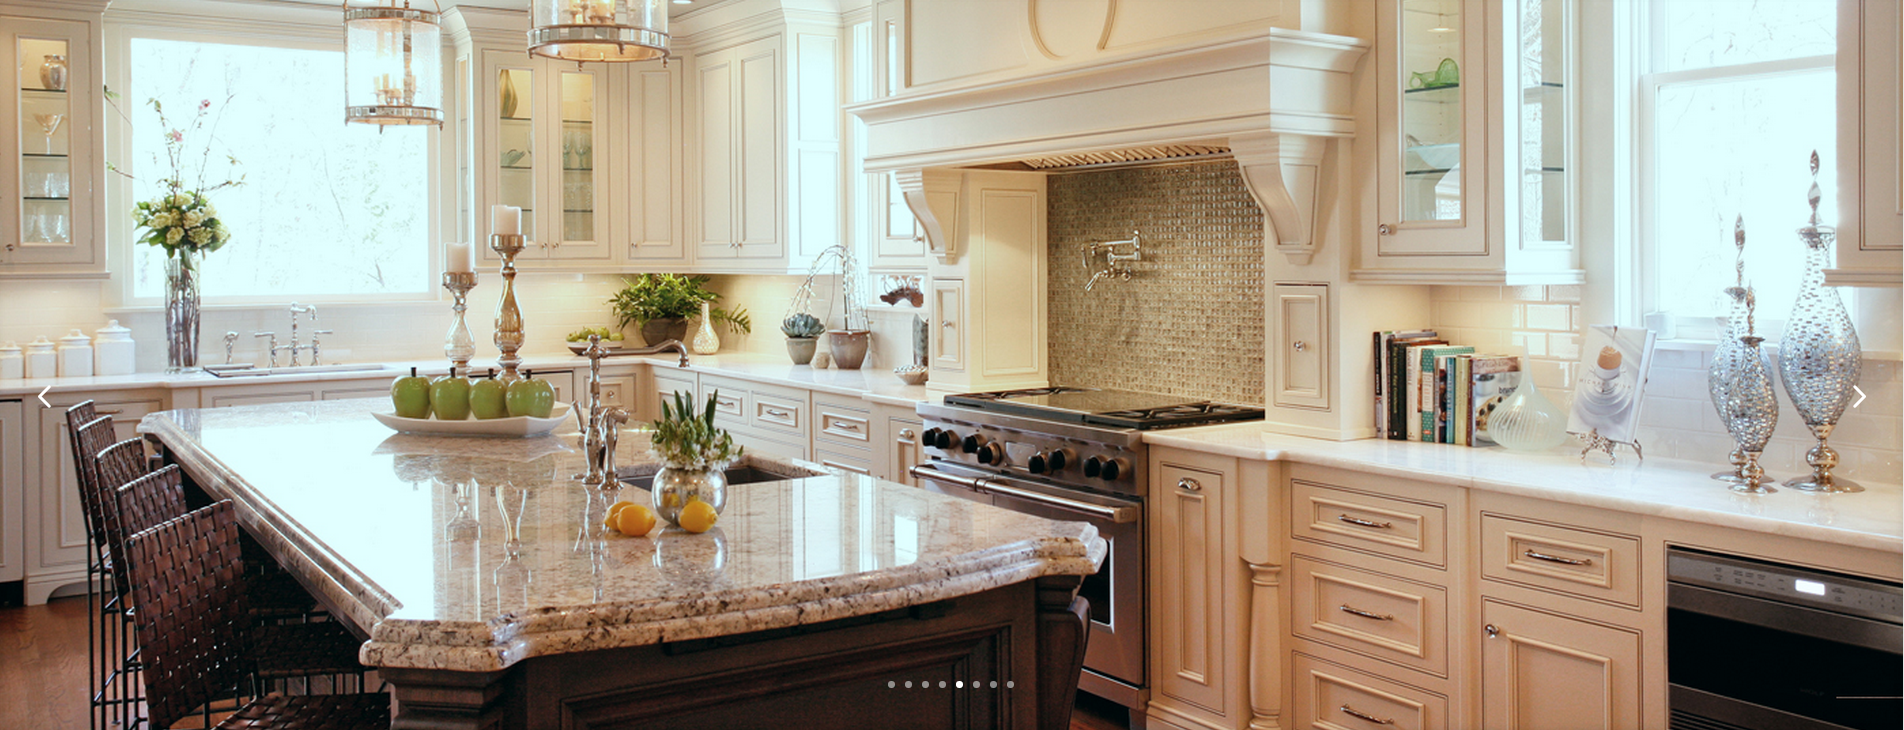 Beautiful kitchens beautiful people a dbc2014 thank you recap hadley court interior Kitchen design blogs 2014